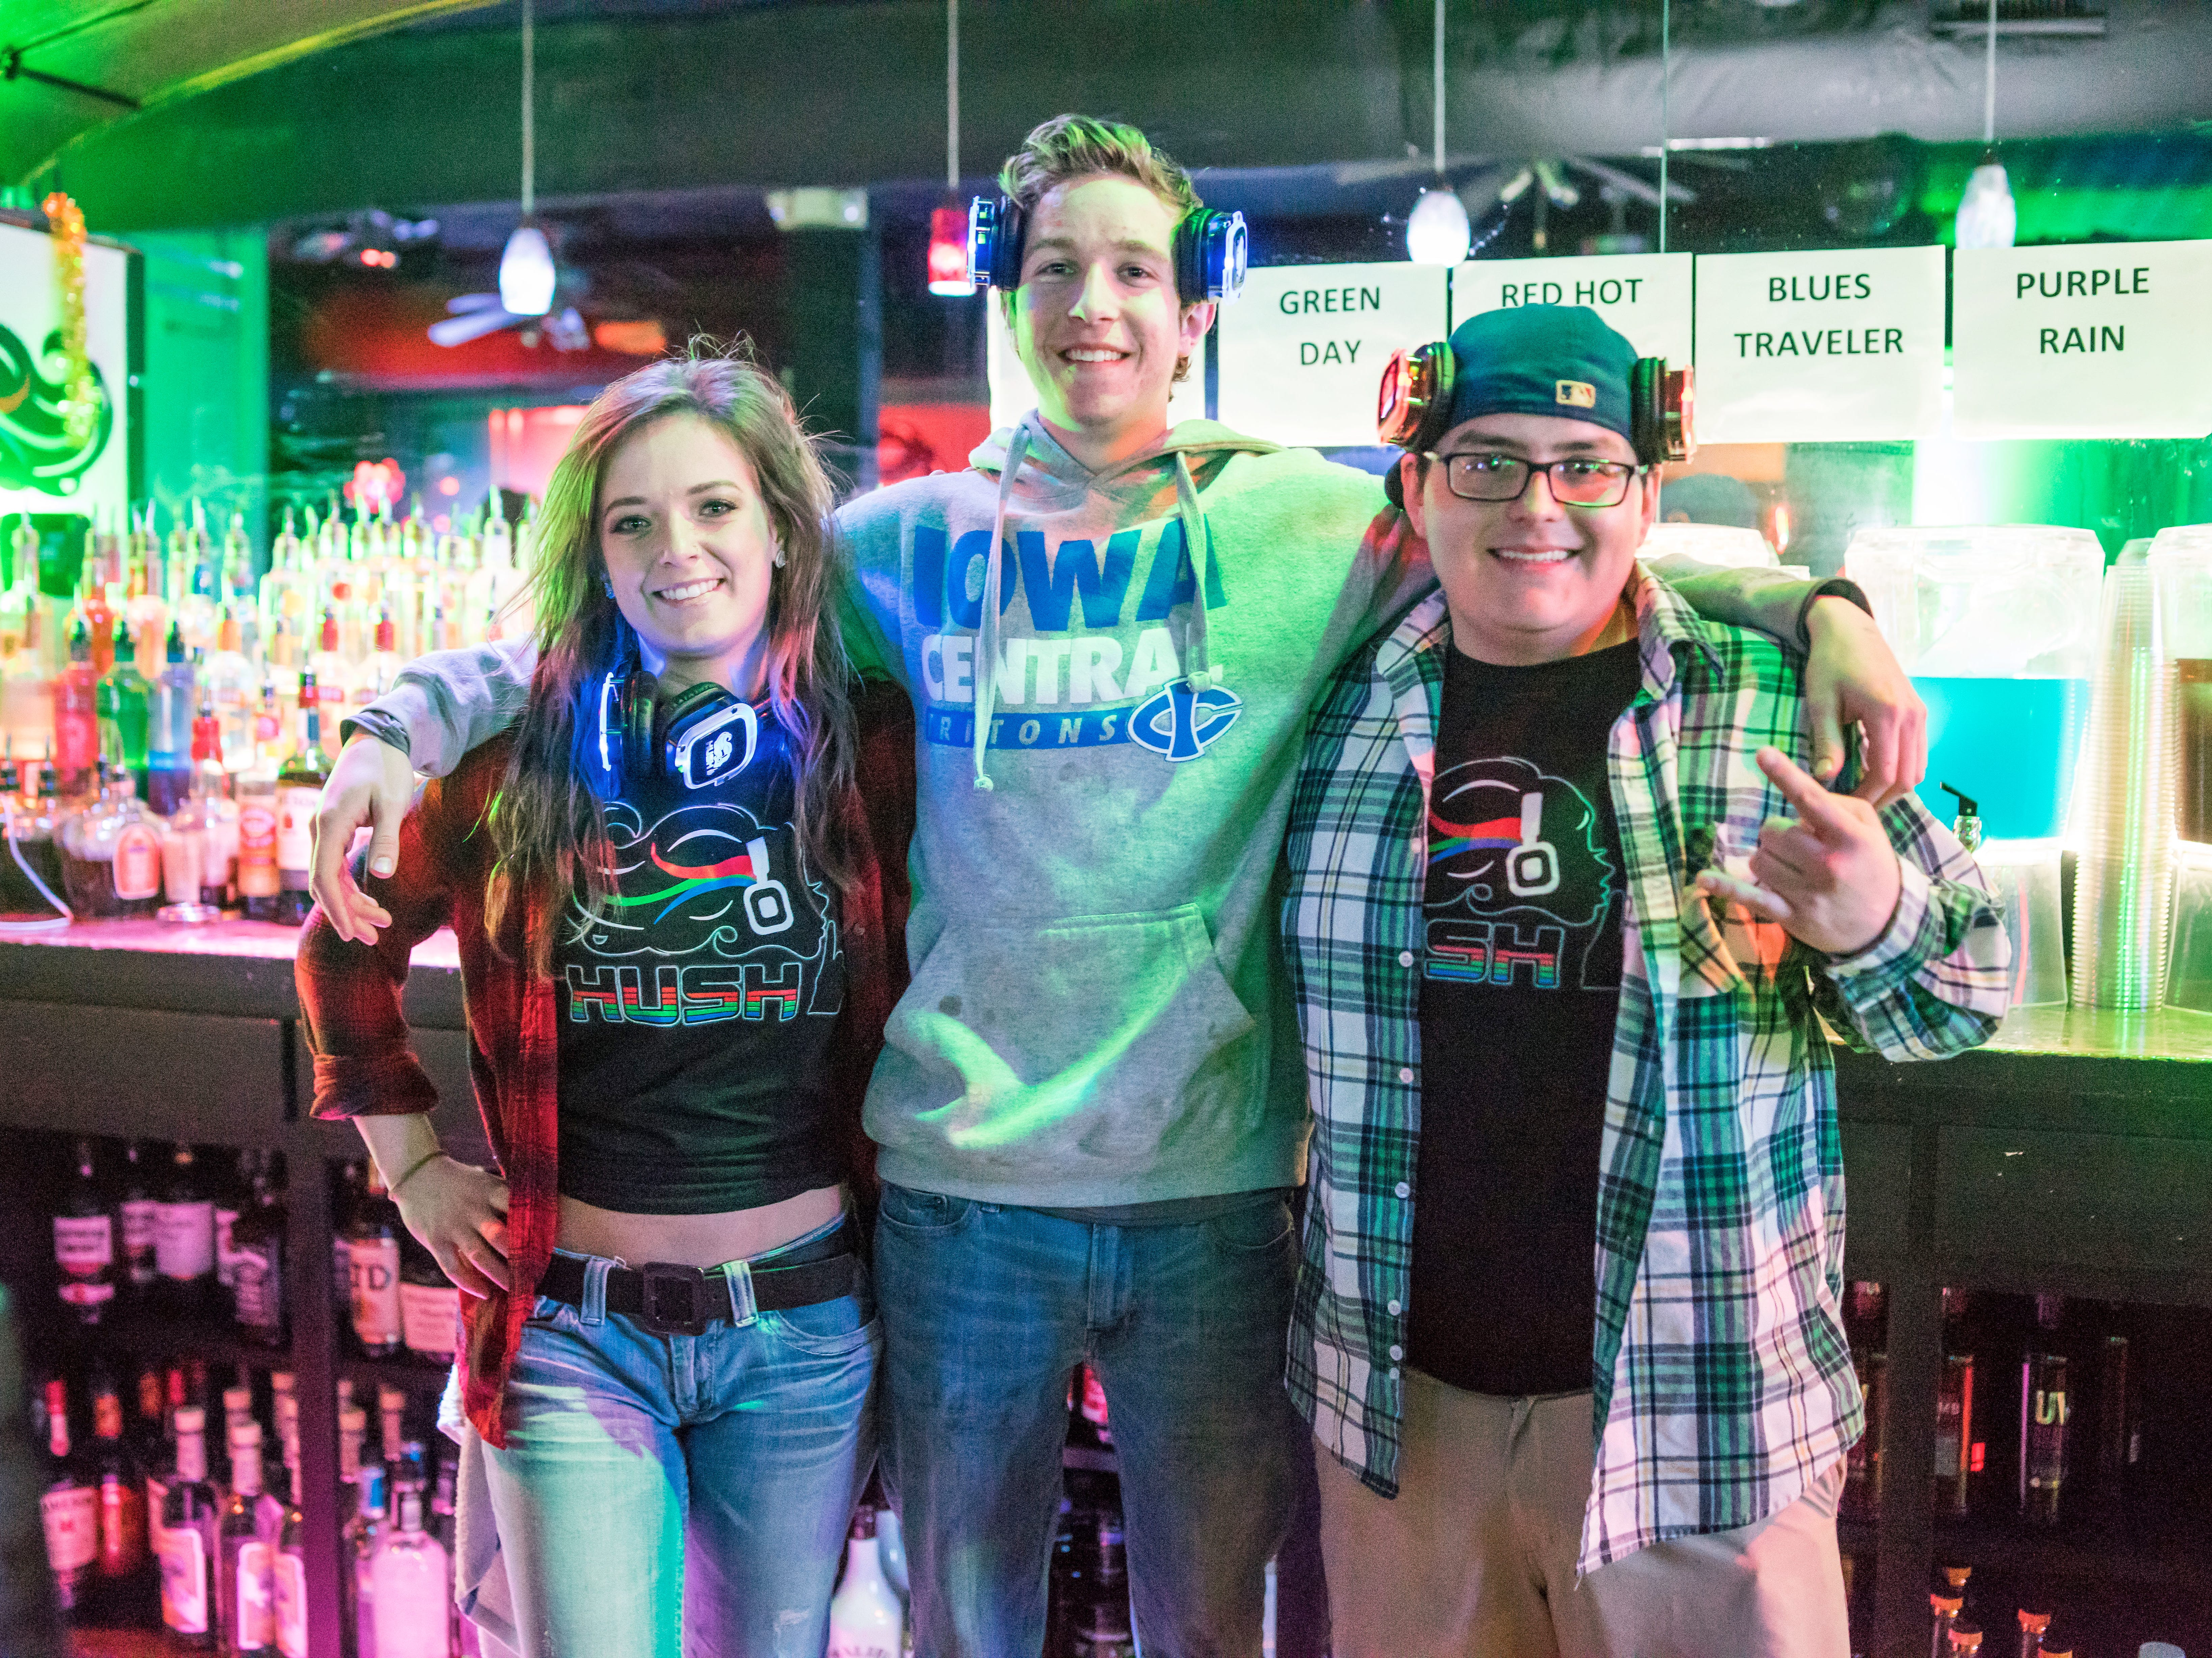 Inos Gomez, 24, Mitchell Wagler, 21, and Brooke Hoffman, 24, all of Des Moines, enjoying their time, Friday, March 15th, at Hush.